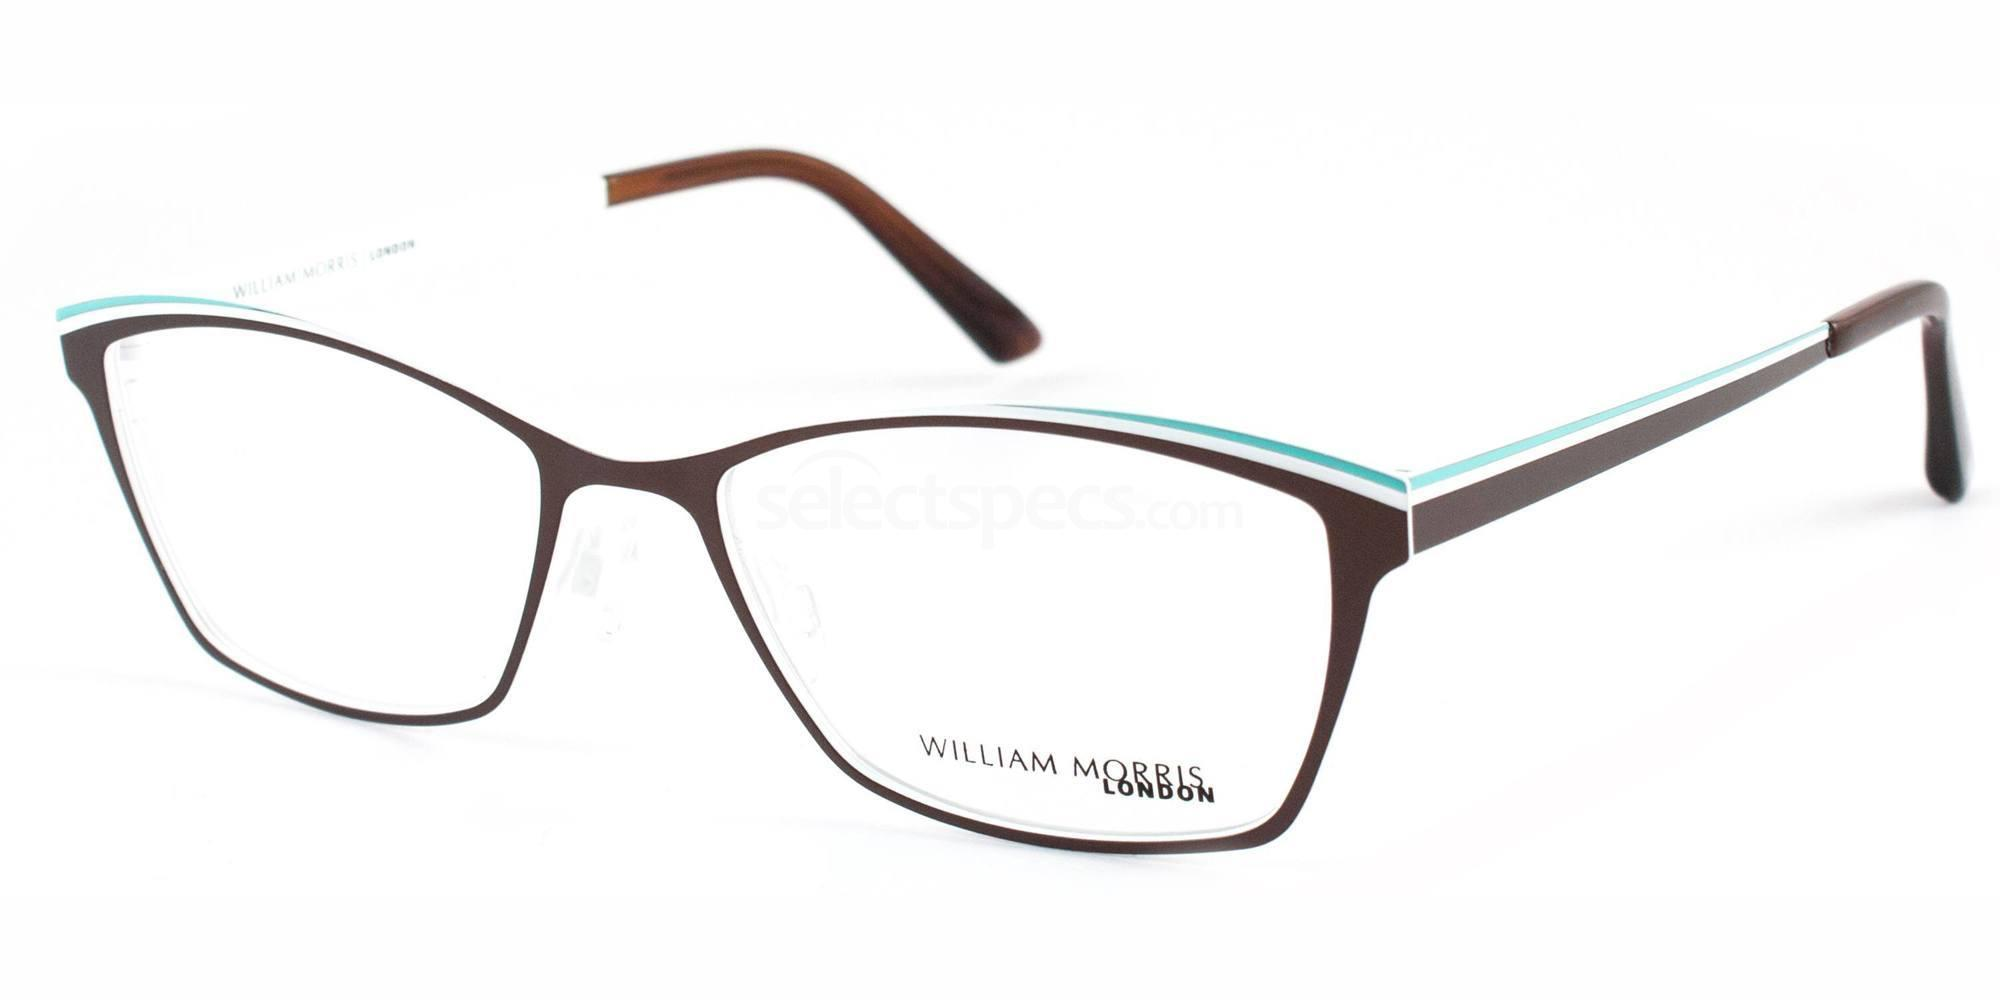 C1 WL4135 Glasses, William Morris London